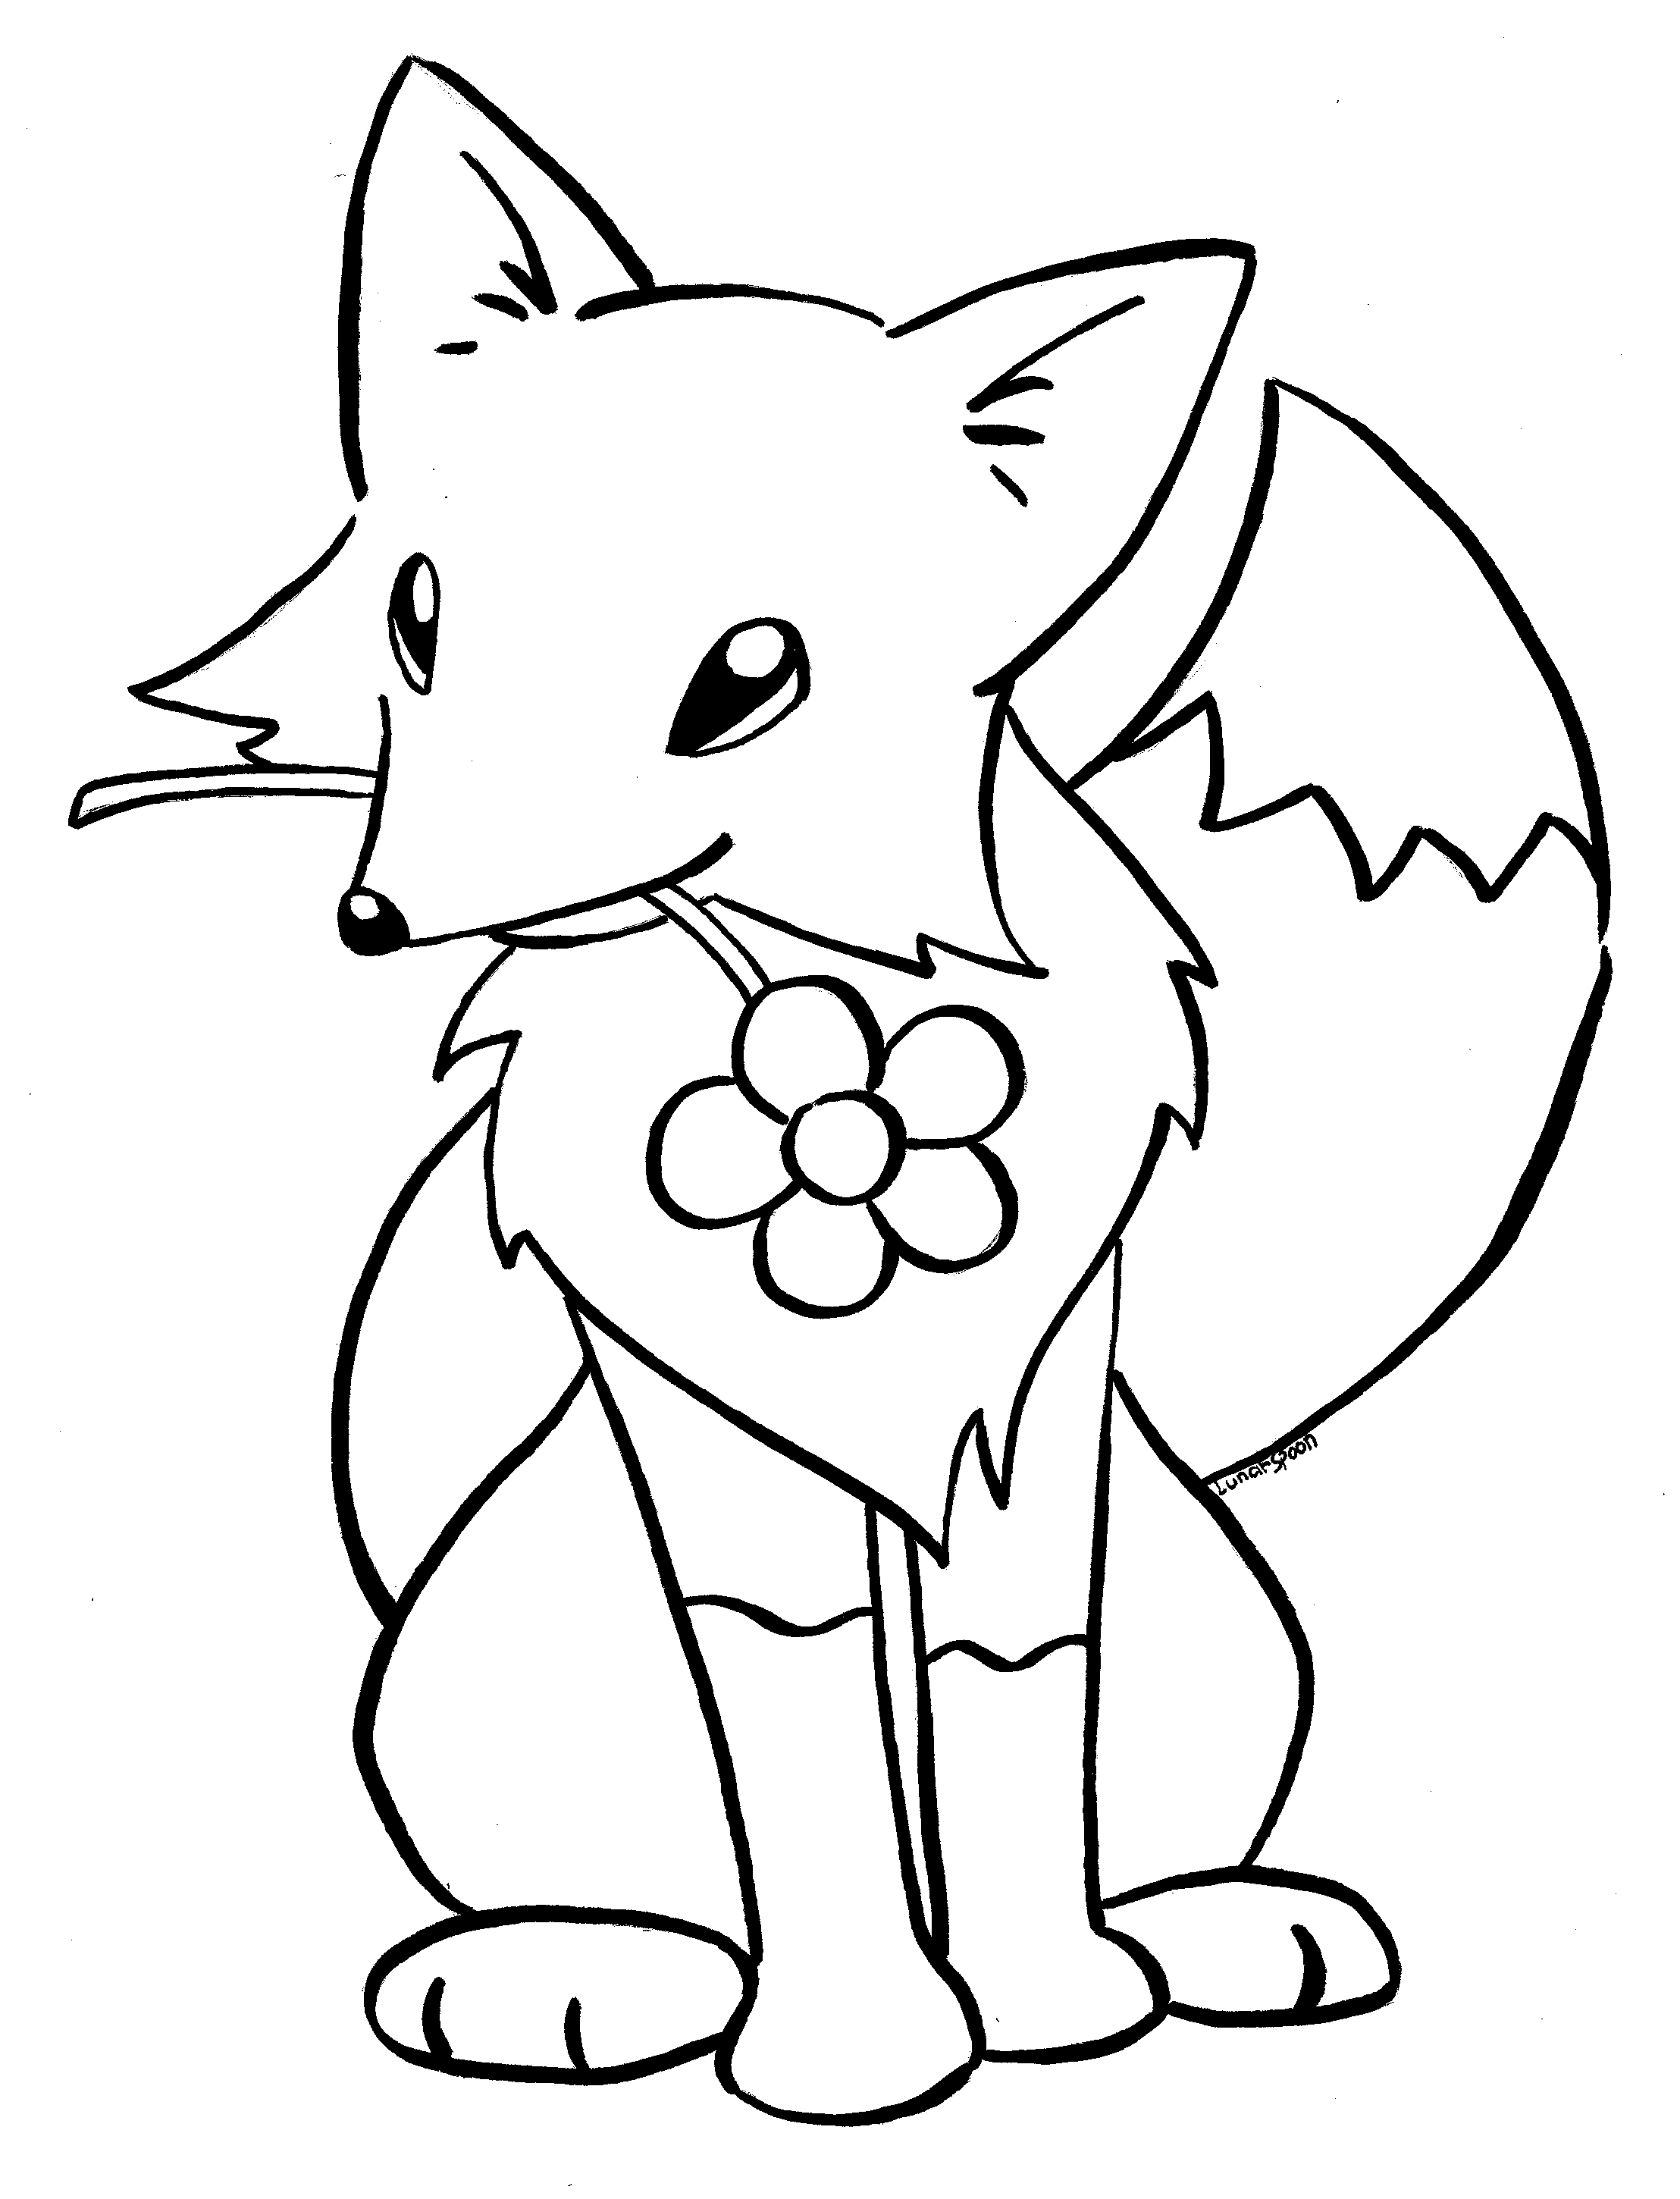 Baby Fox Coloring Pages Page Cute Free Download Printable Images To Within Cute Fox Drawing Fox Coloring Page Baby Animal Drawings